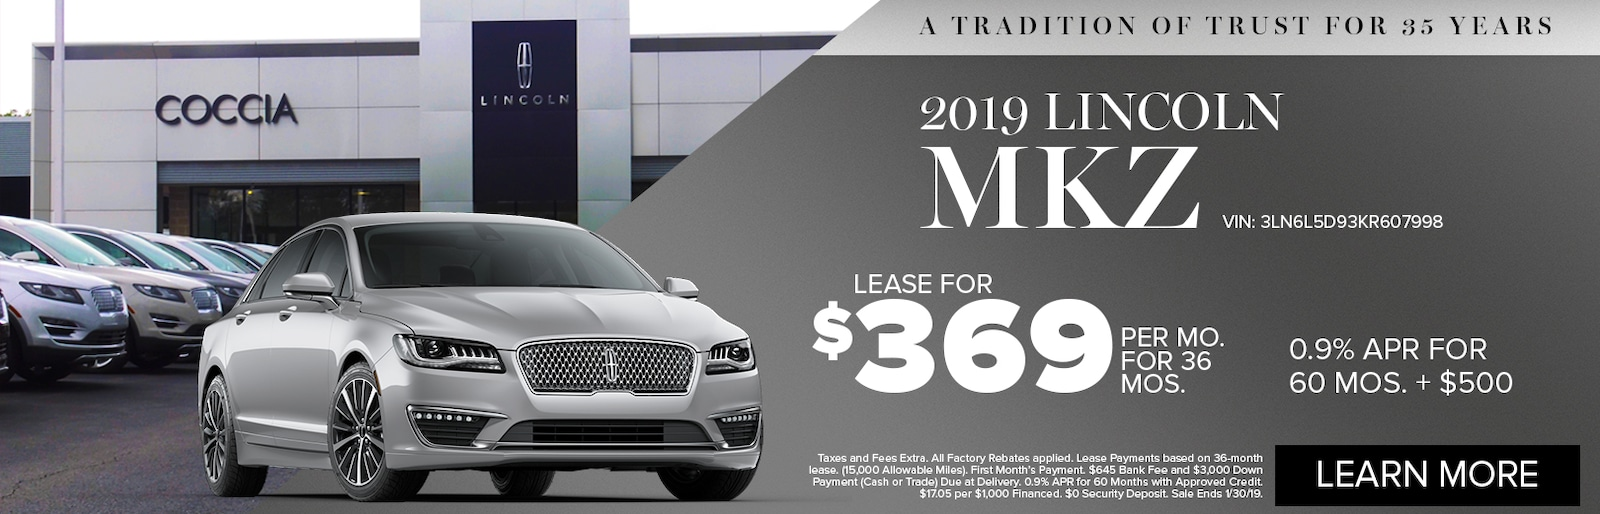 New Used Lincoln Dealership Coccia Lincoln Wilkes Barre Pa